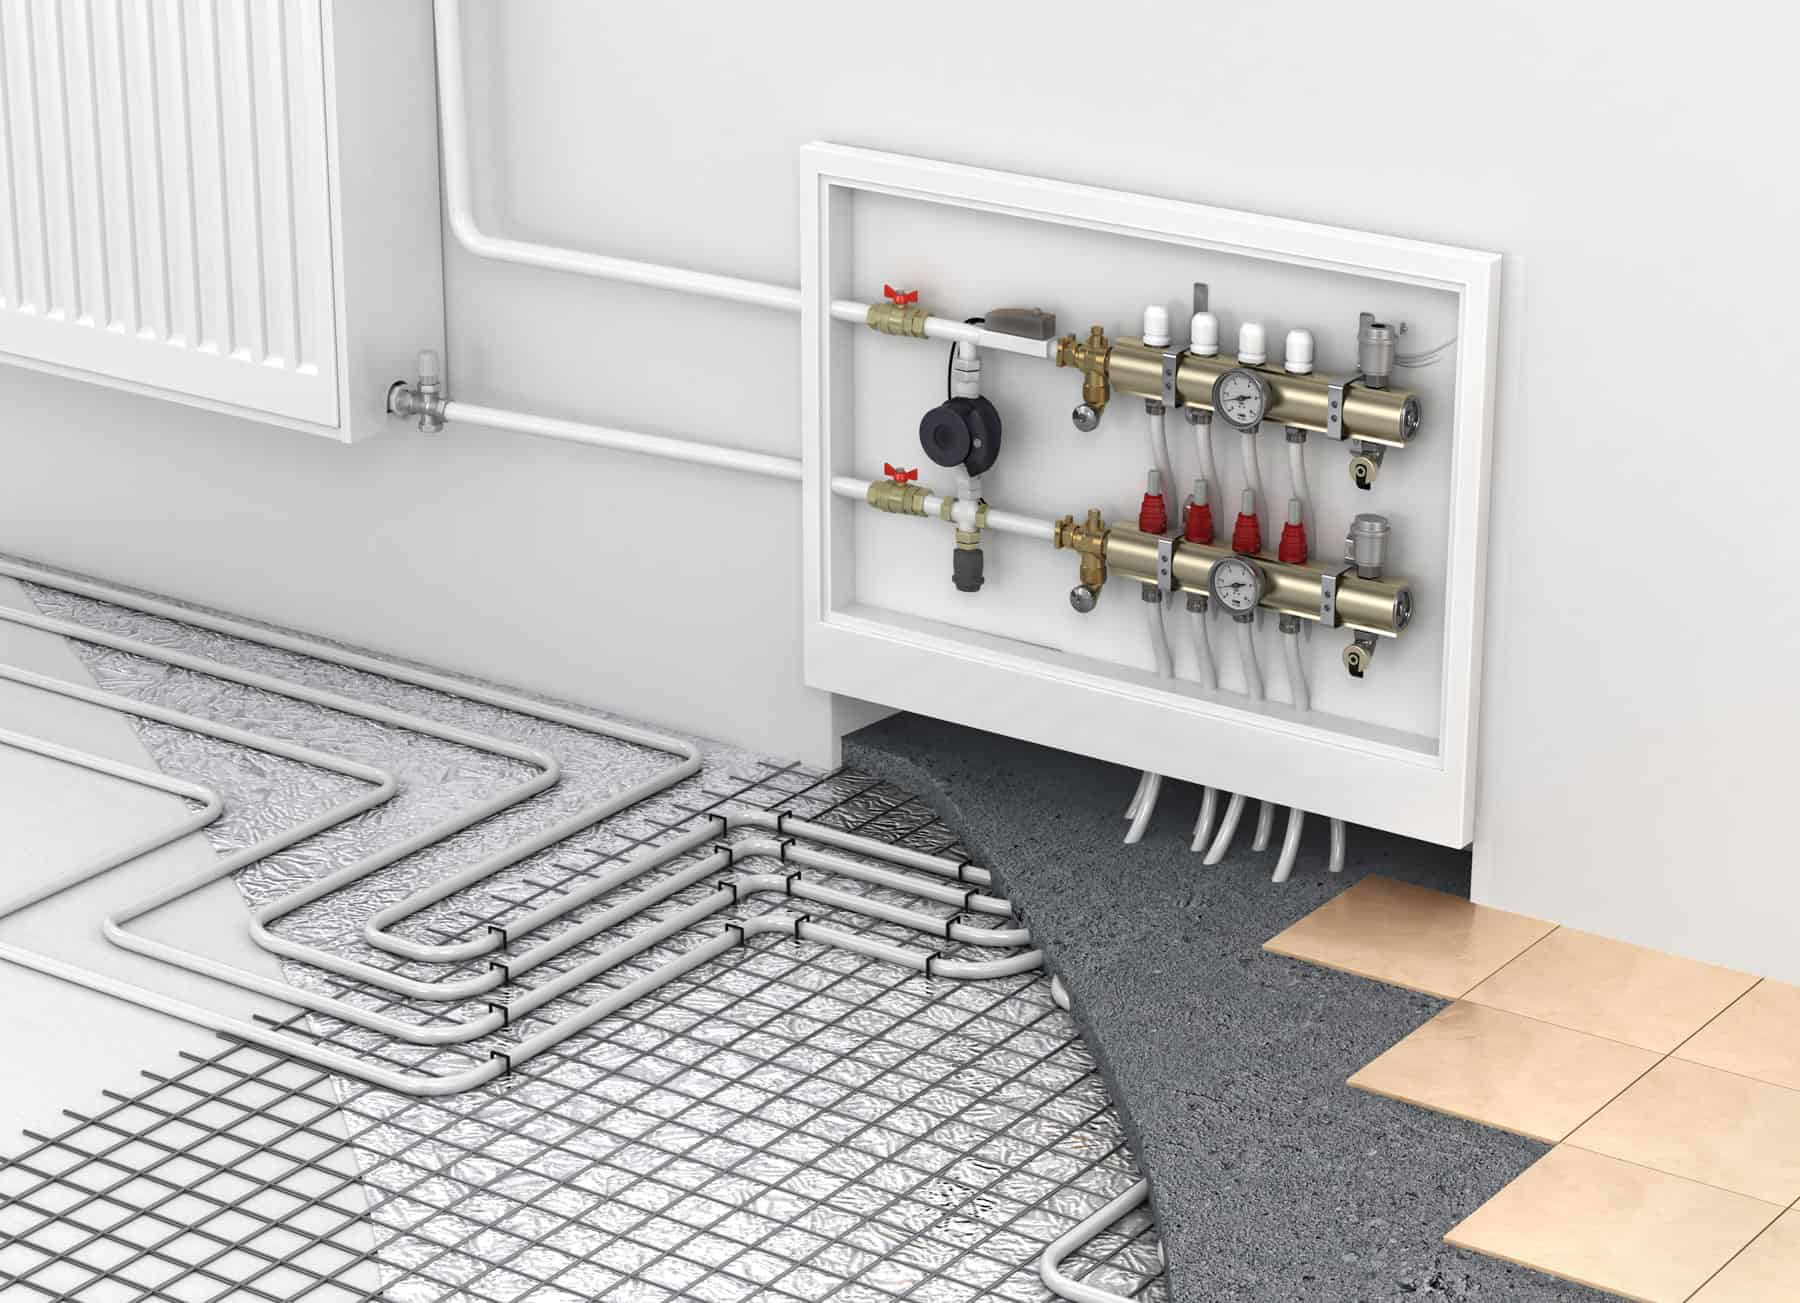 Plumber Tukwila, Renton, Bellevue & Seattle WA | Radiant Heating Service